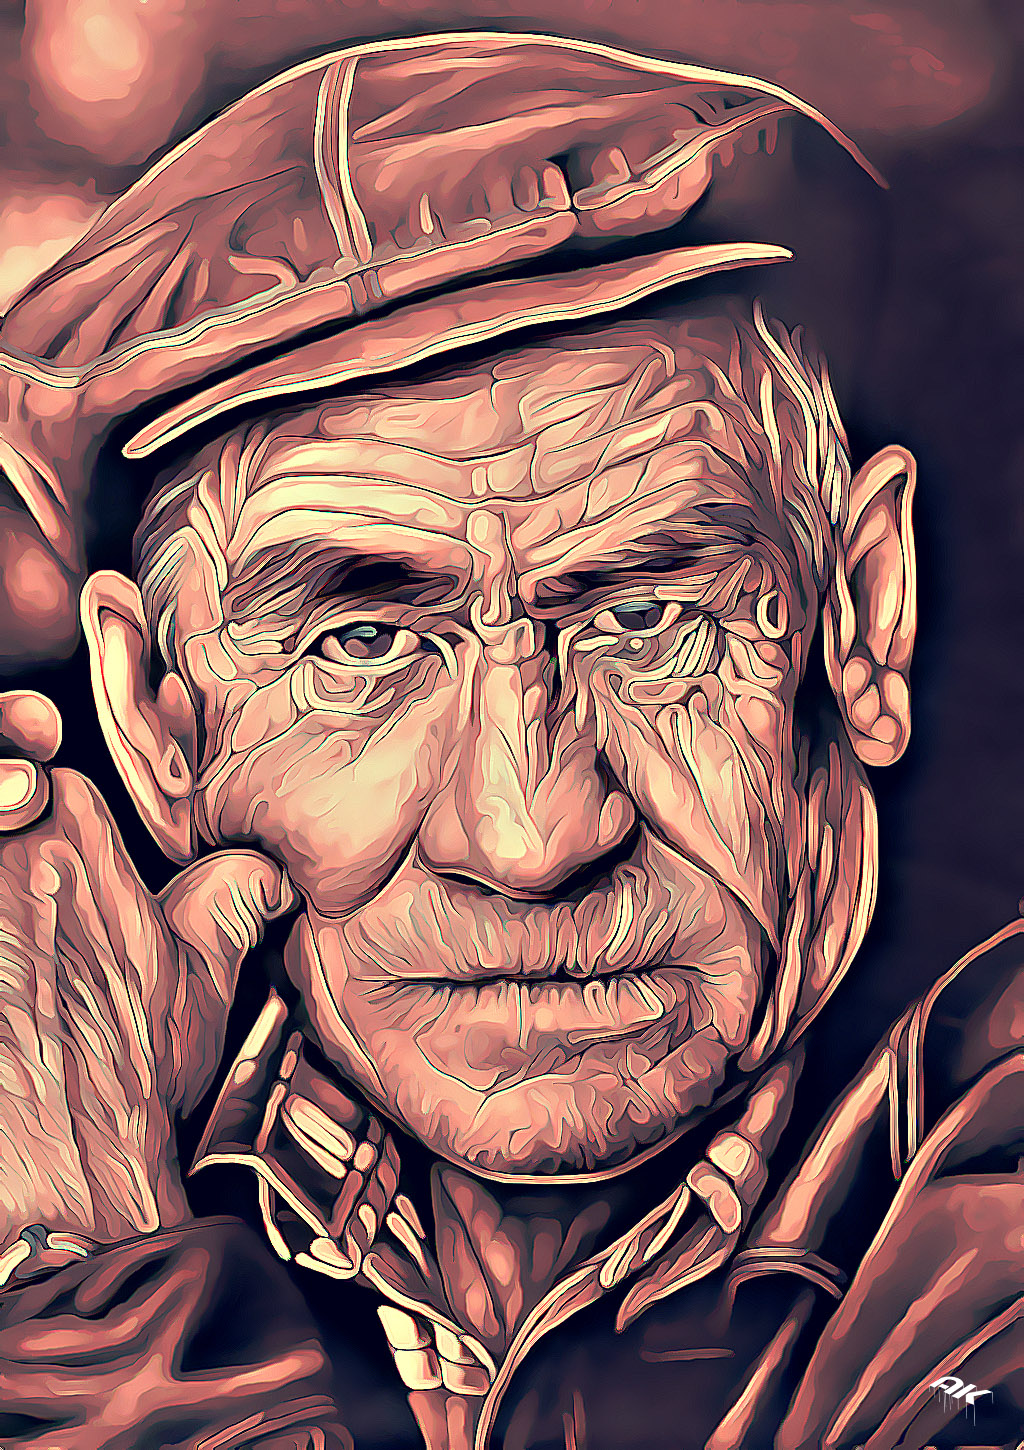 oil-portraits-6-copyright-andrew-knutt